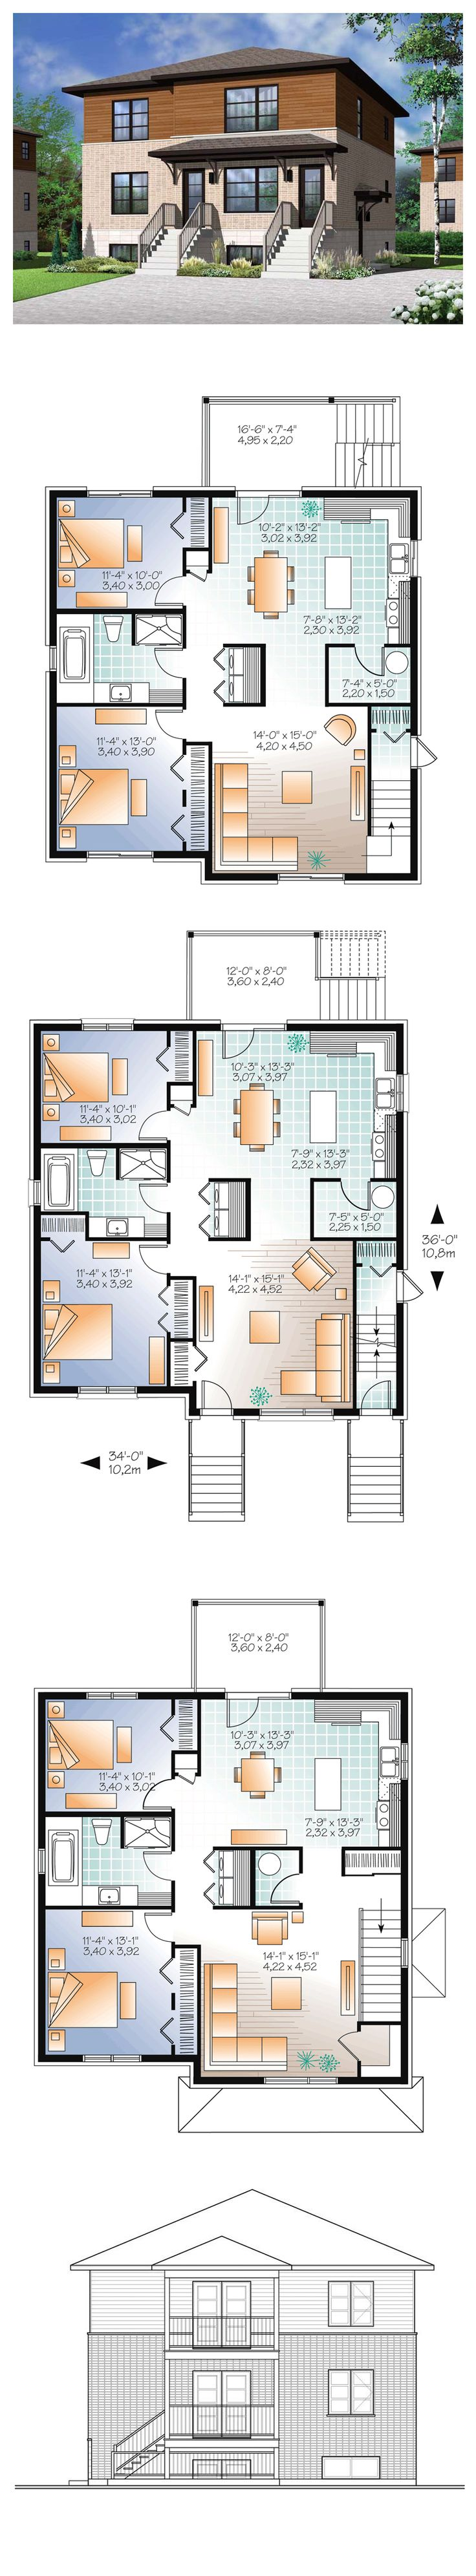 best 25 multi family homes ideas that you will like on pinterest